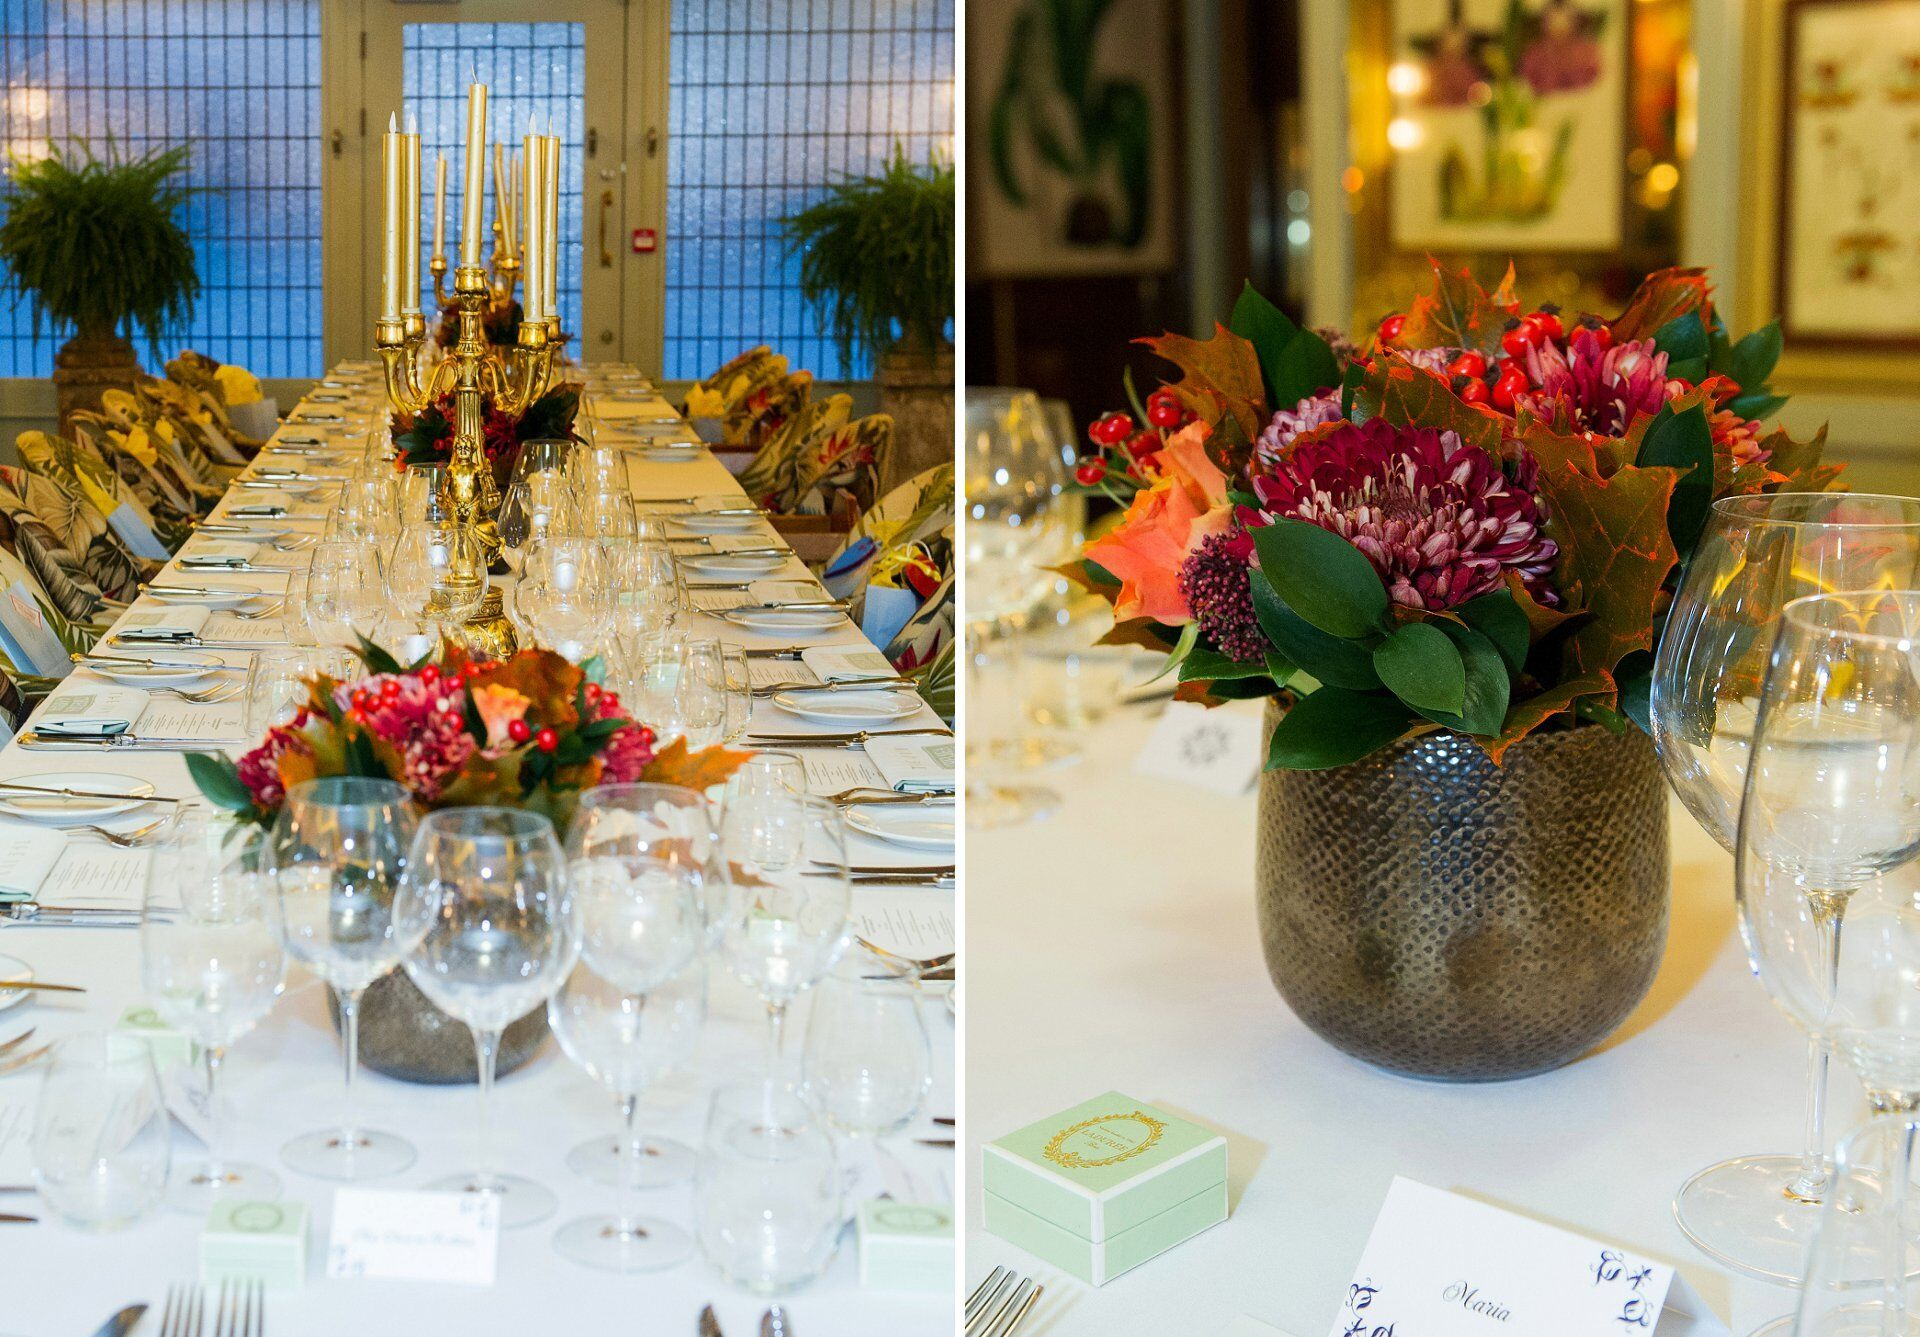 the eden room at the ivy chelsea garden laid for a wedding breakfast for 30 guests